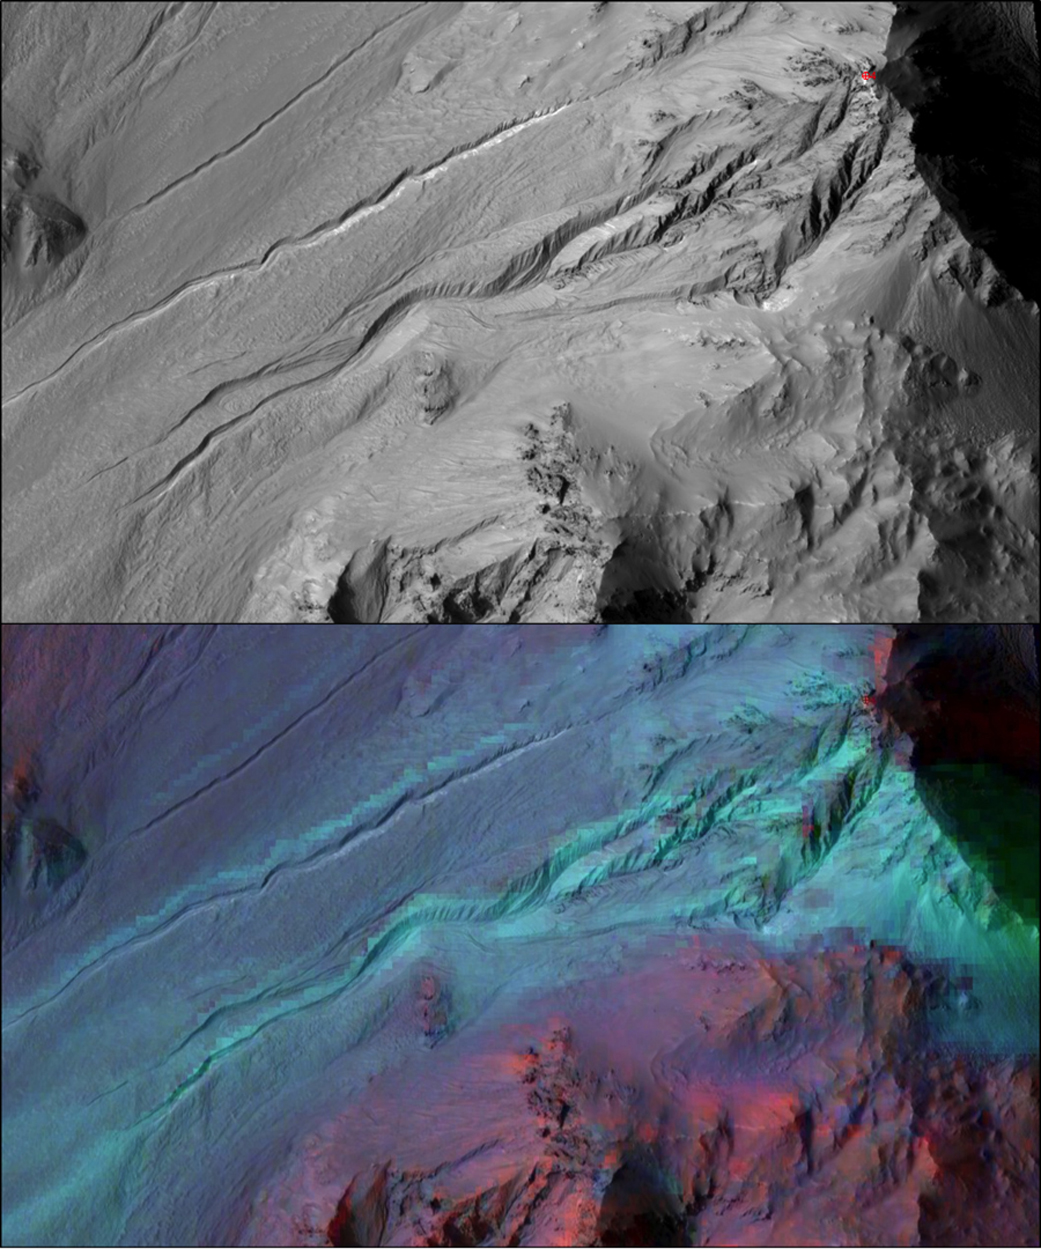 Gullies on Mars Likely Not Carved by Liquid Water, NASA Says